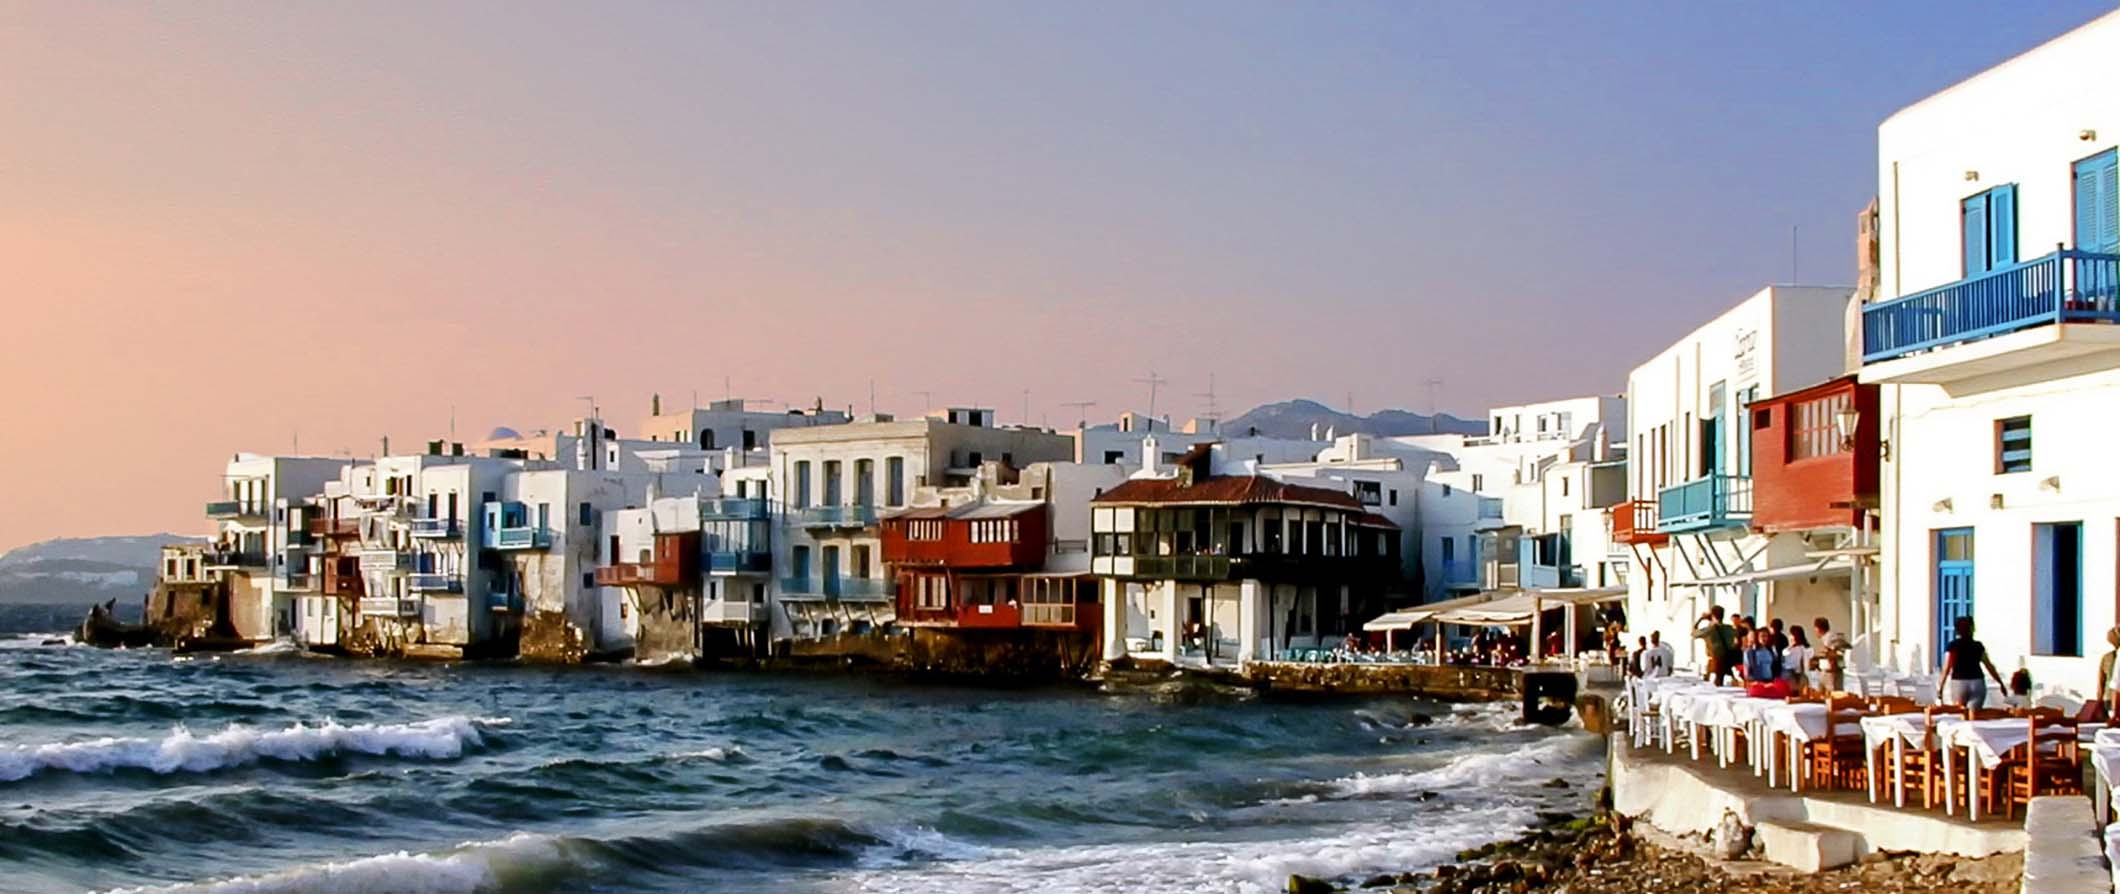 view of Mykonos buildings along the waterfront at sunset